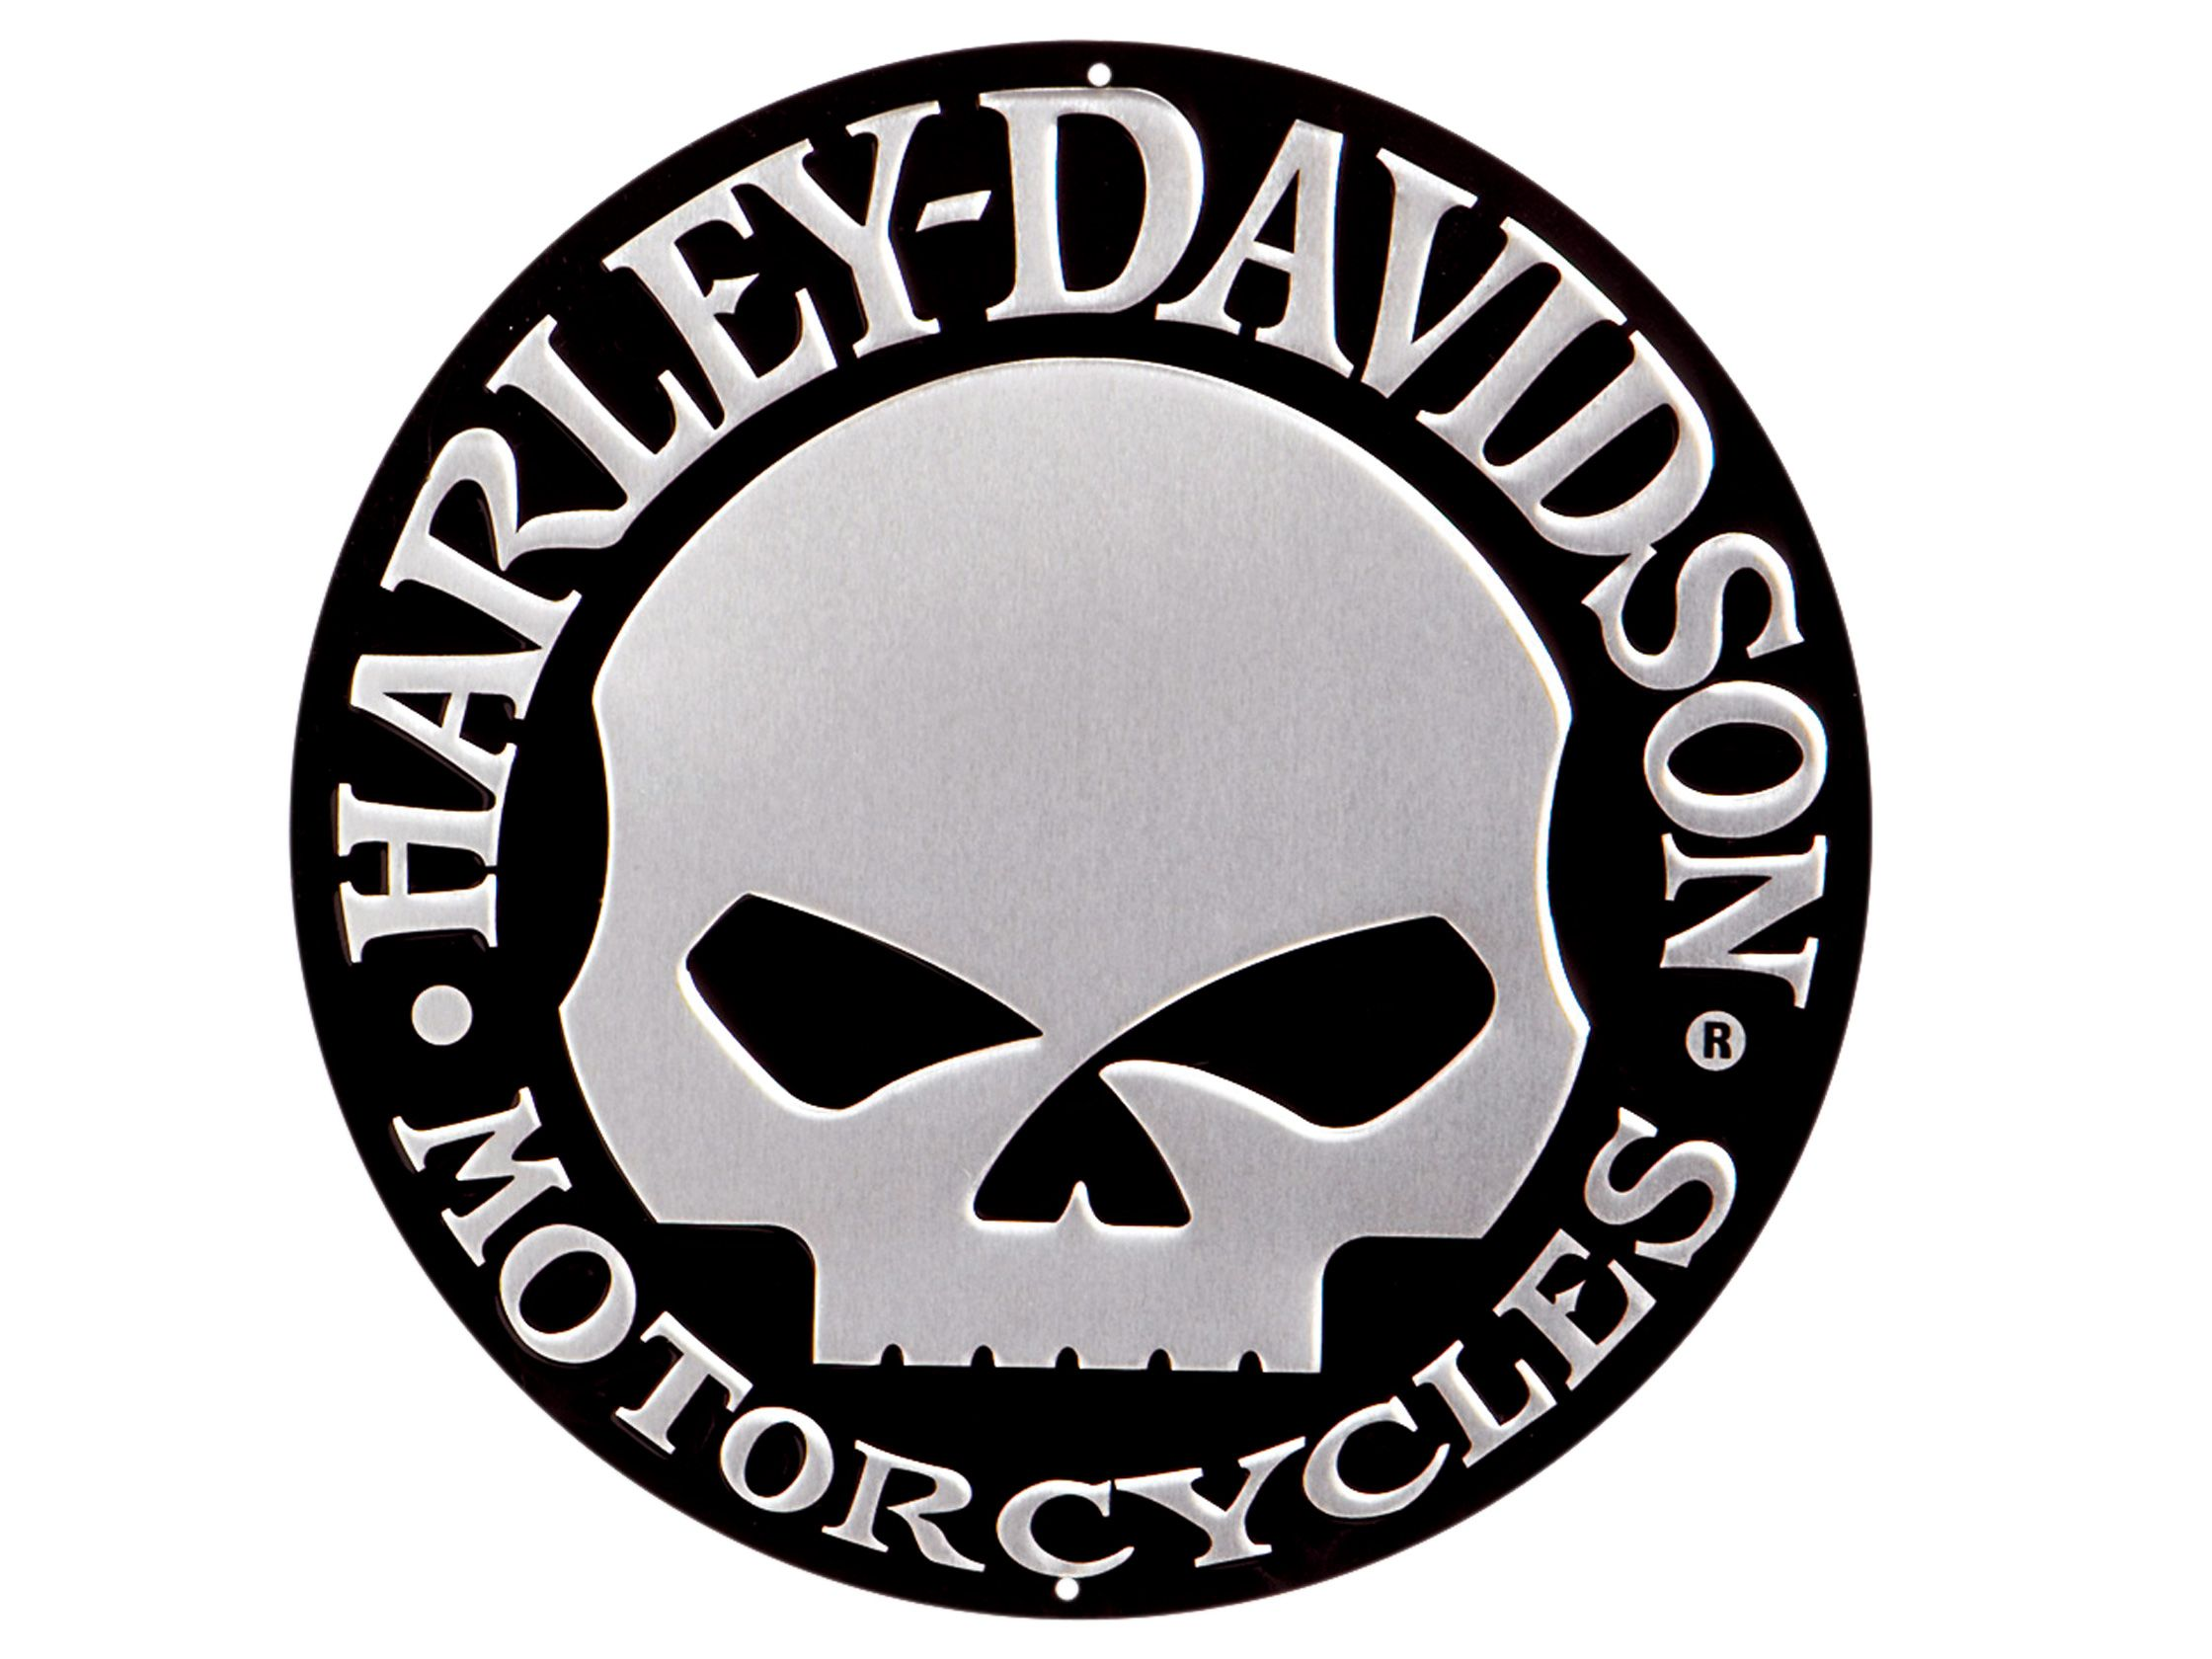 harley davidson number 1 skull logo background 1 hd wallpapers tee rh pinterest com harley davidson 1 logo harley 1 logo